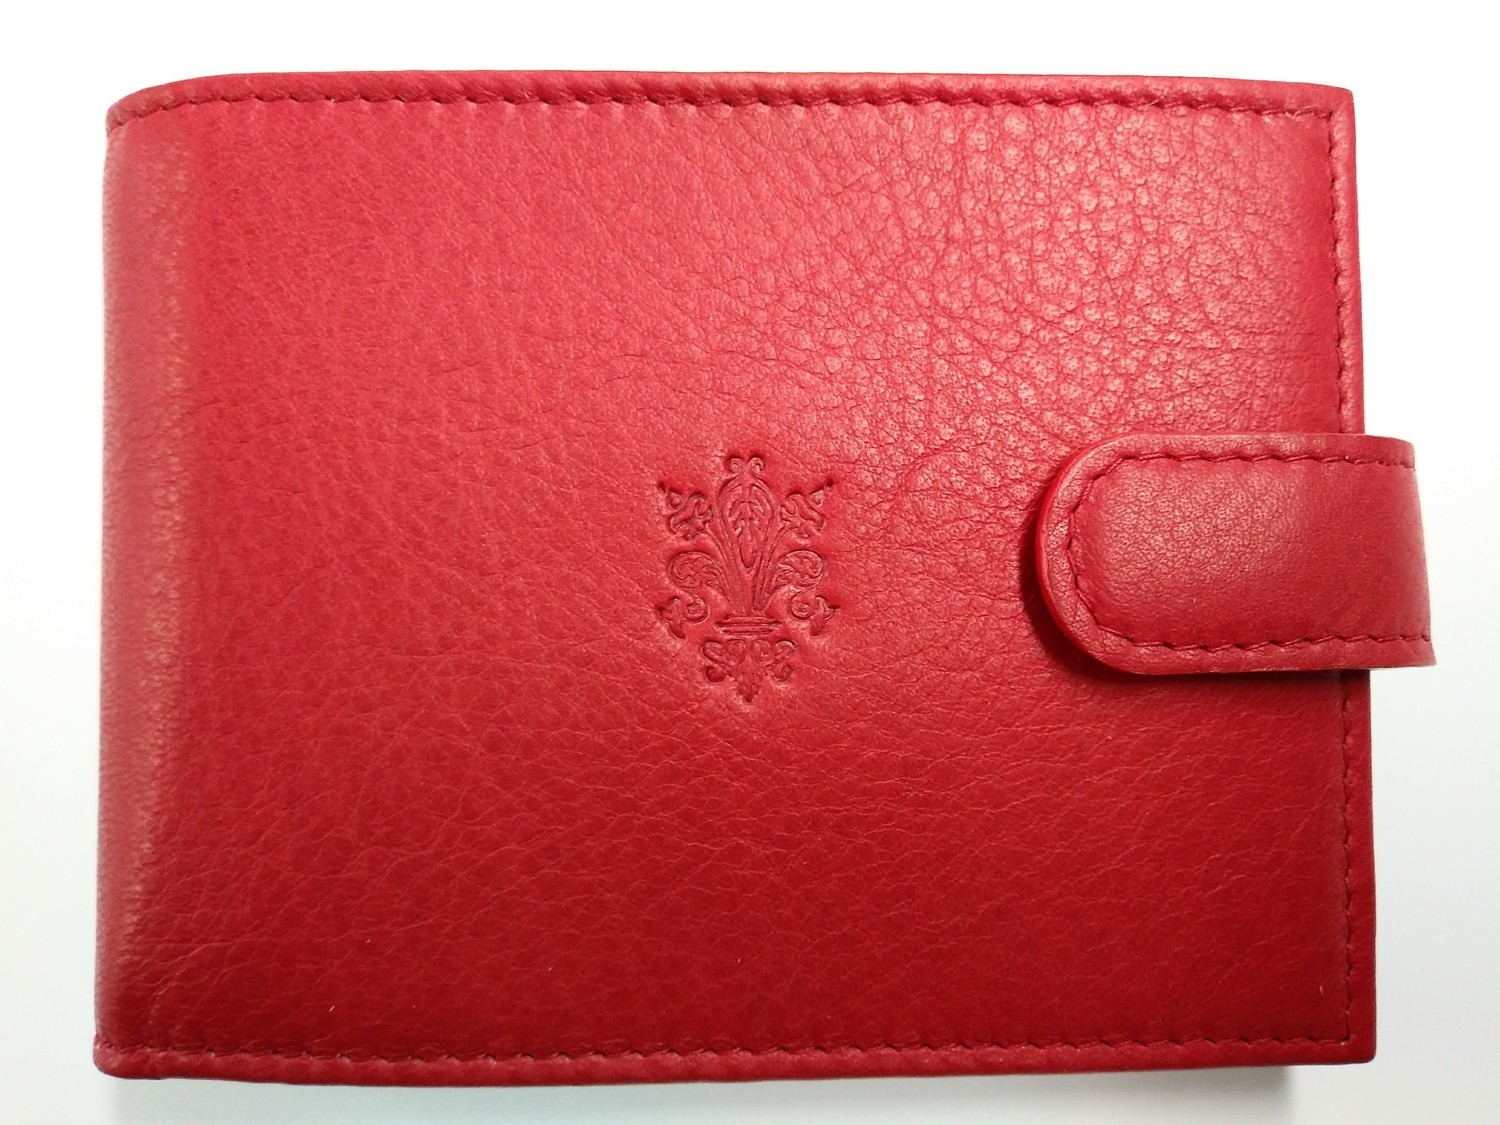 Tuscany red leather wallet